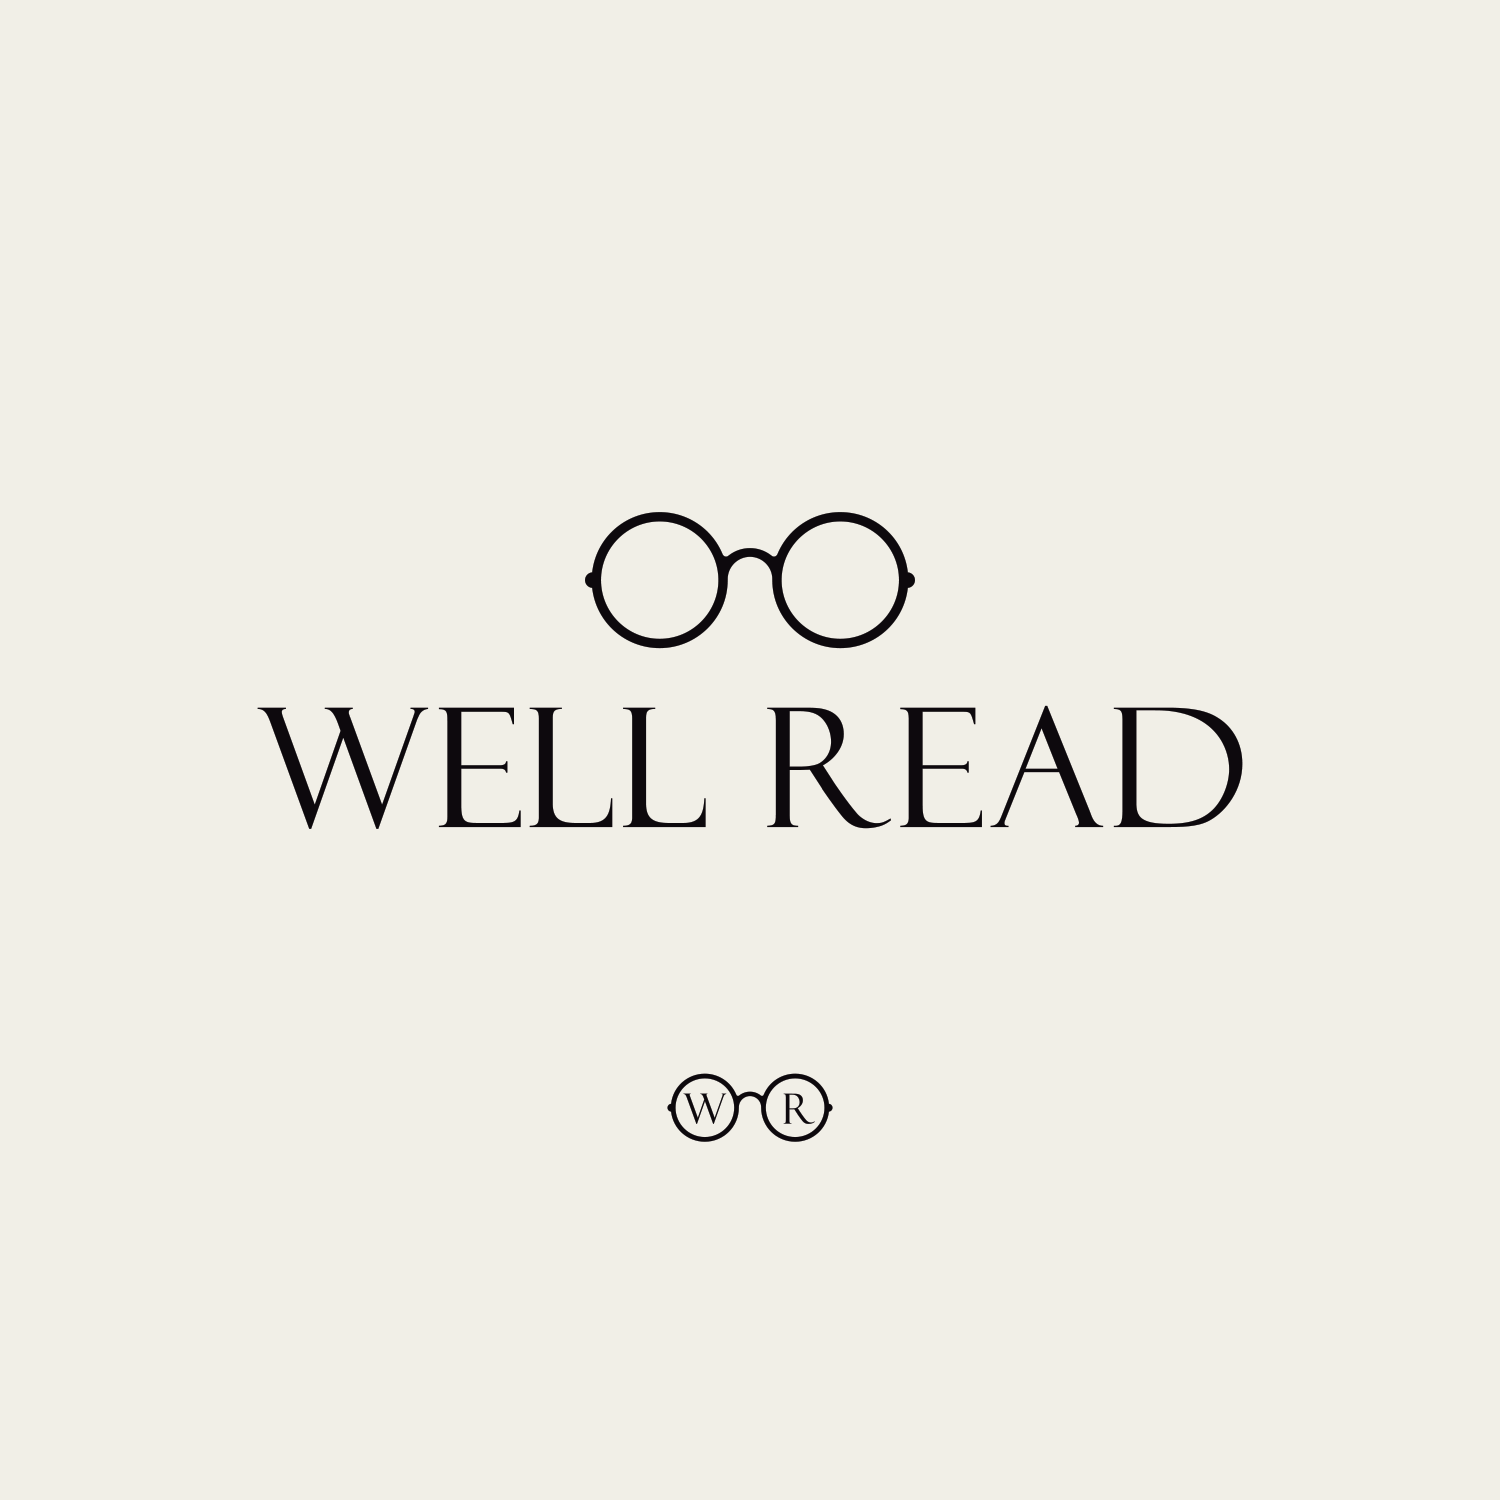 Well Read logo design